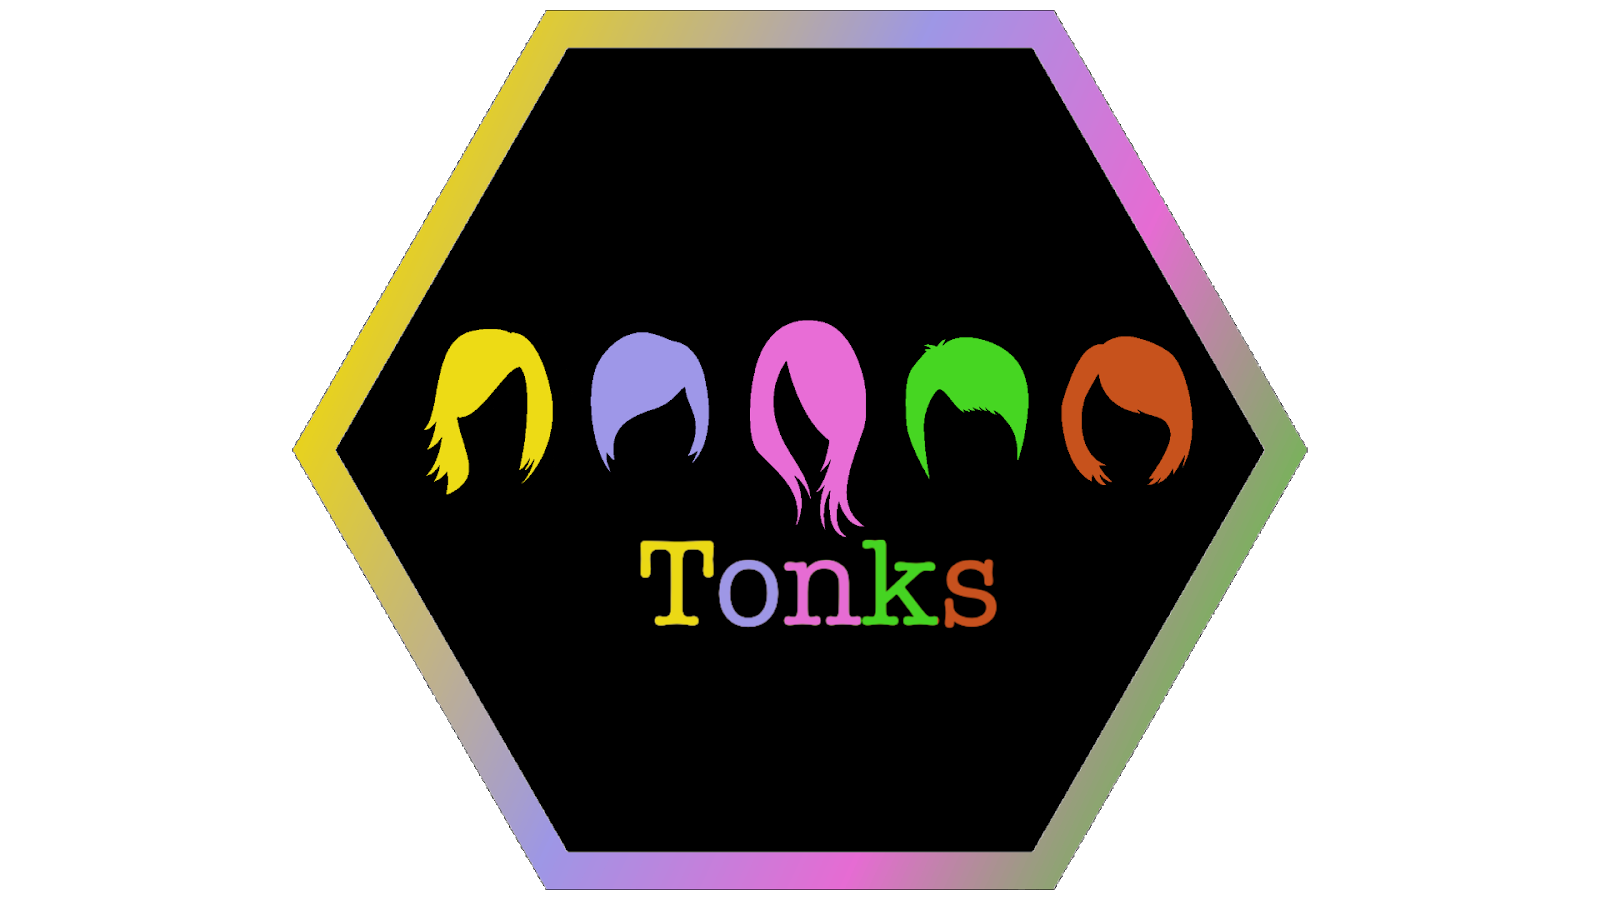 Hexagonal icon that says Tonks and has five different hairstyles pictured all in neon colors.